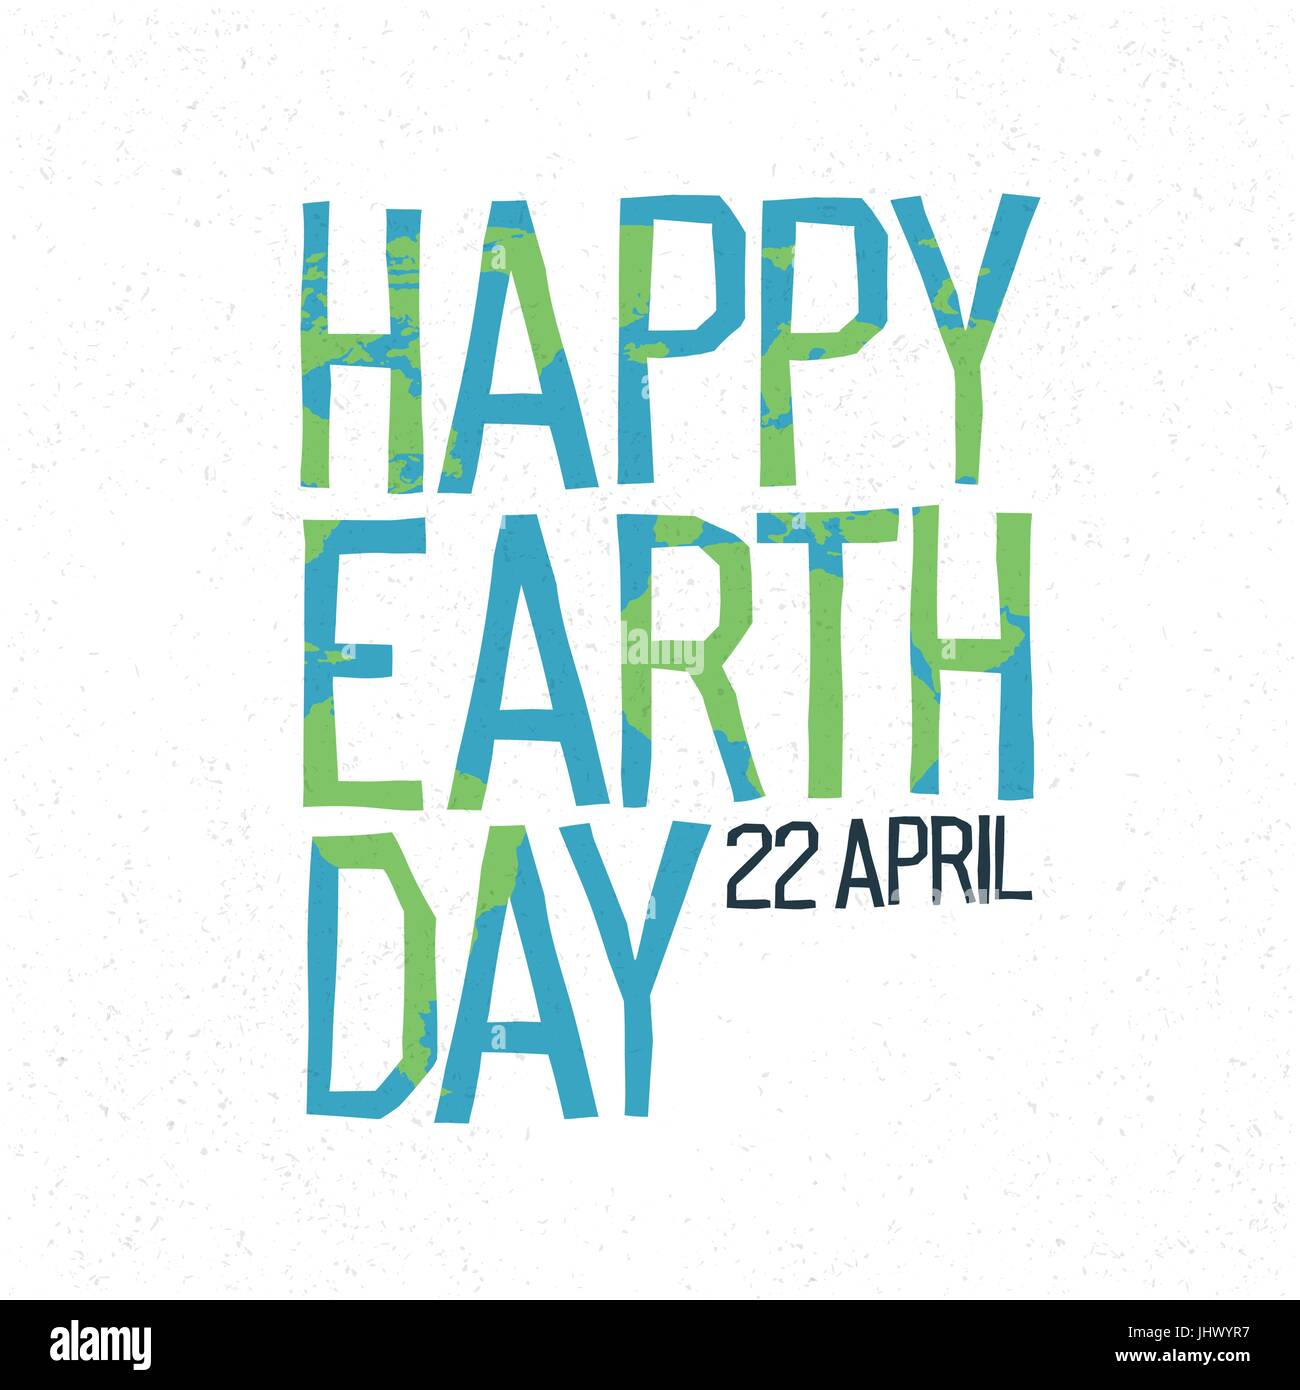 Happy earth day 22 april abstract logo design world map shaqped happy earth day 22 april abstract logo design world map shaqped letters gumiabroncs Images